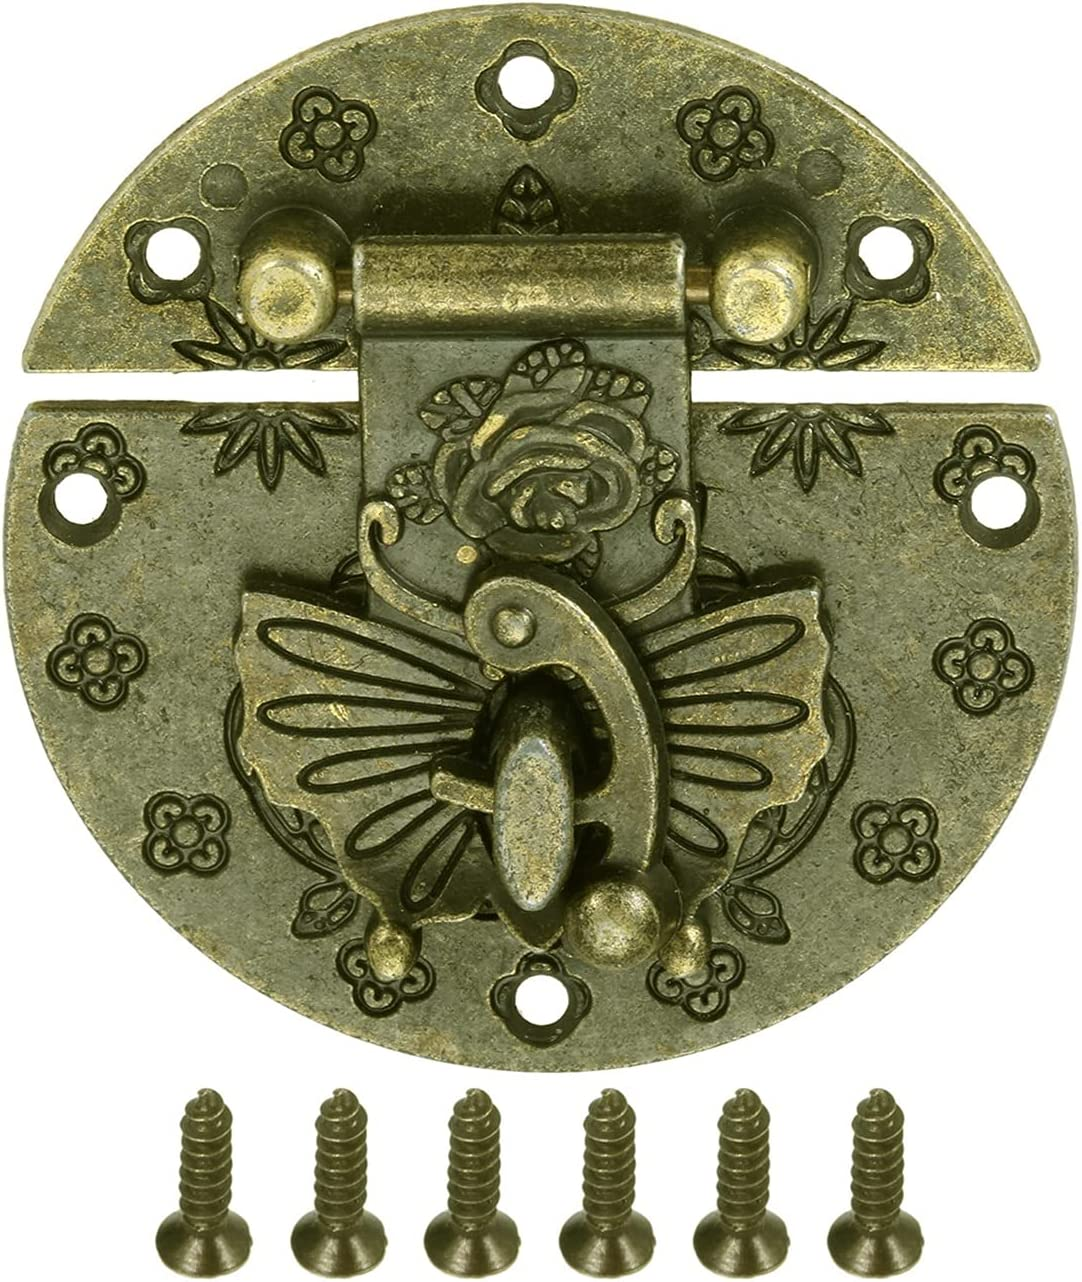 Household outlet Furniture Hardware OFFicial mail order Hinges Butterfly Old-fashioned 58mm